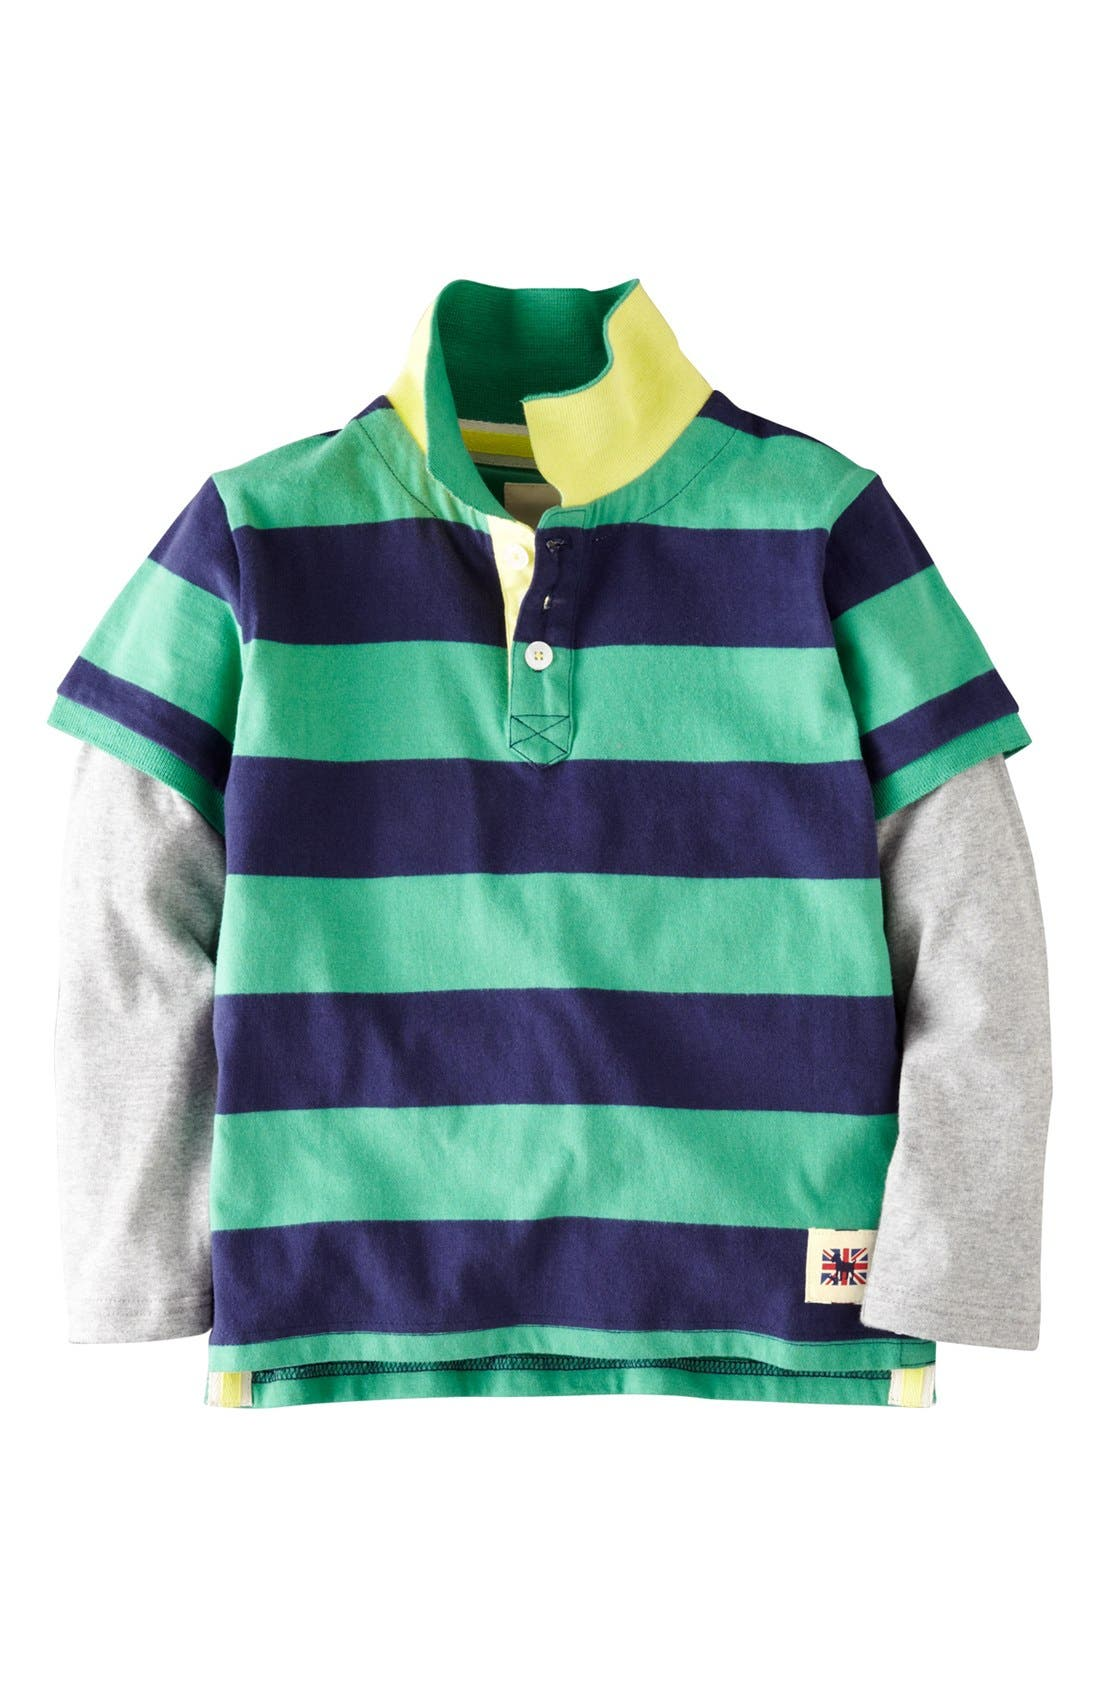 Main Image - Mini Boden Layered Sleeve Polo (Toddler Boys, Little Boys & Big Boys)